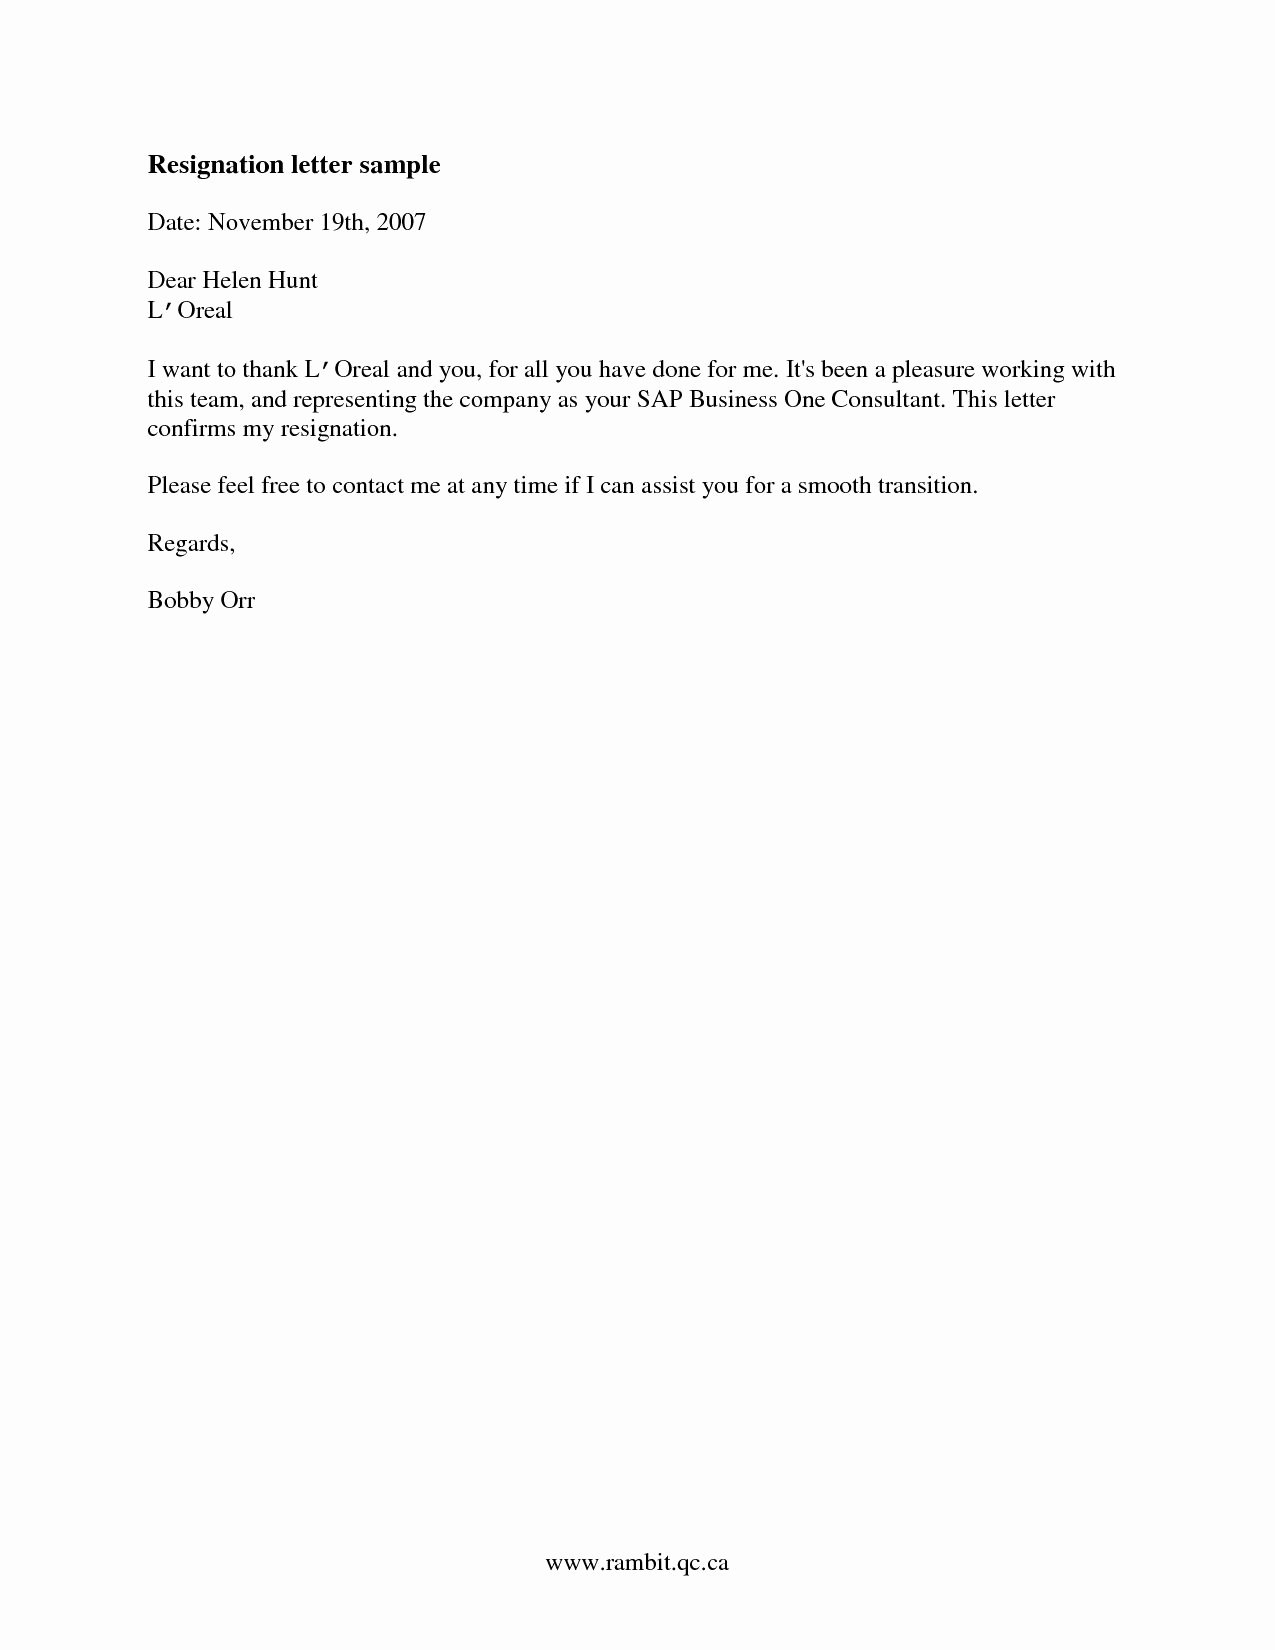 Short Cover Letter Example Awesome 23 Short Cover Letter Short Cover Letter Cover Letter